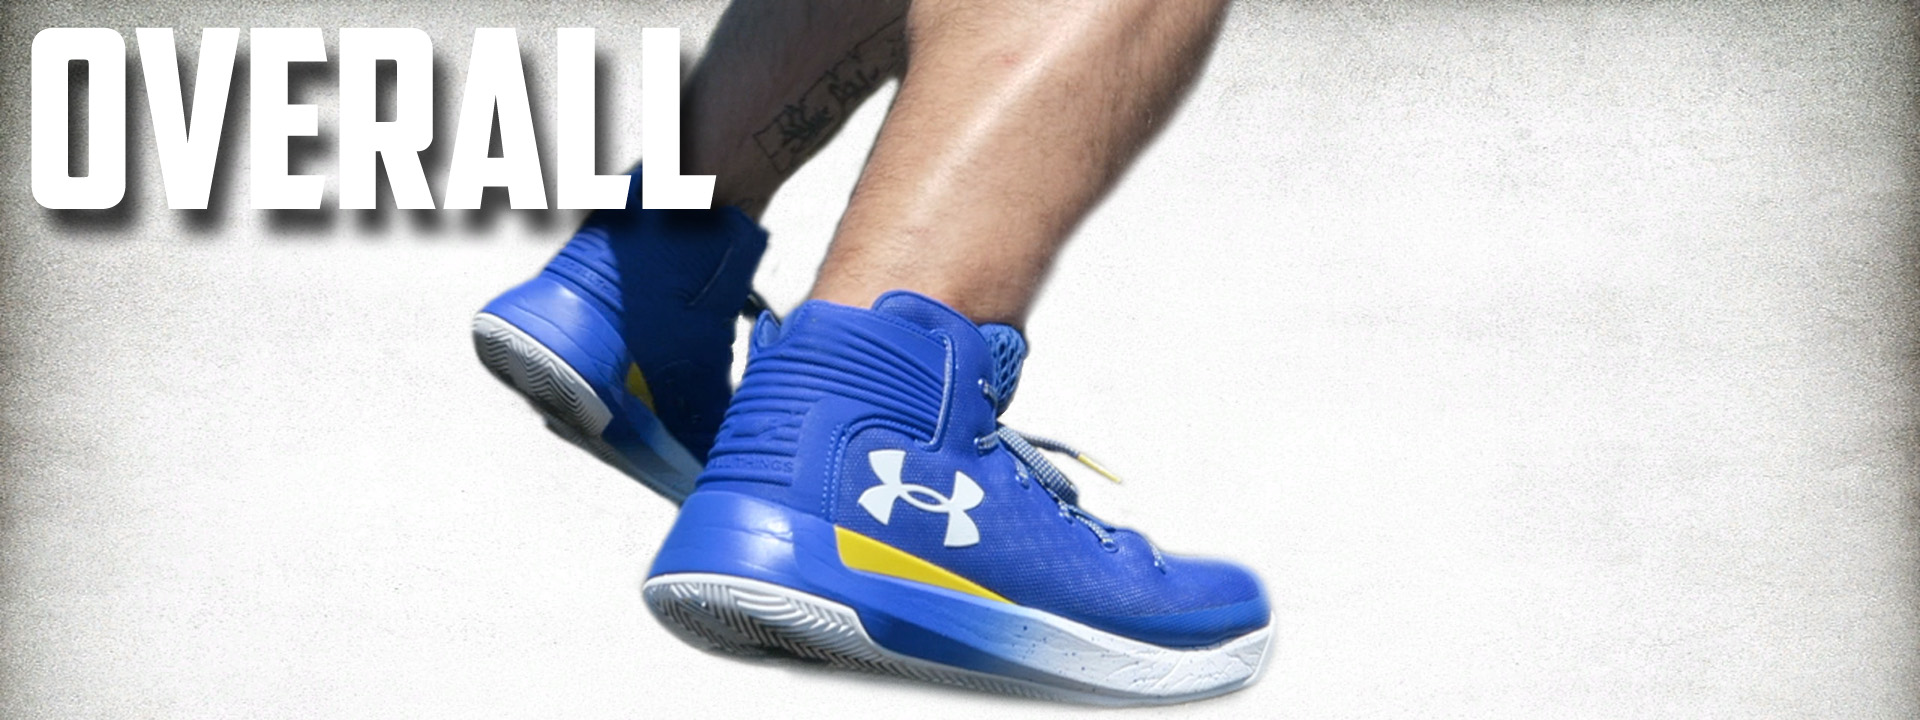 Under Armour Curry 3 ZER0 performance review overall